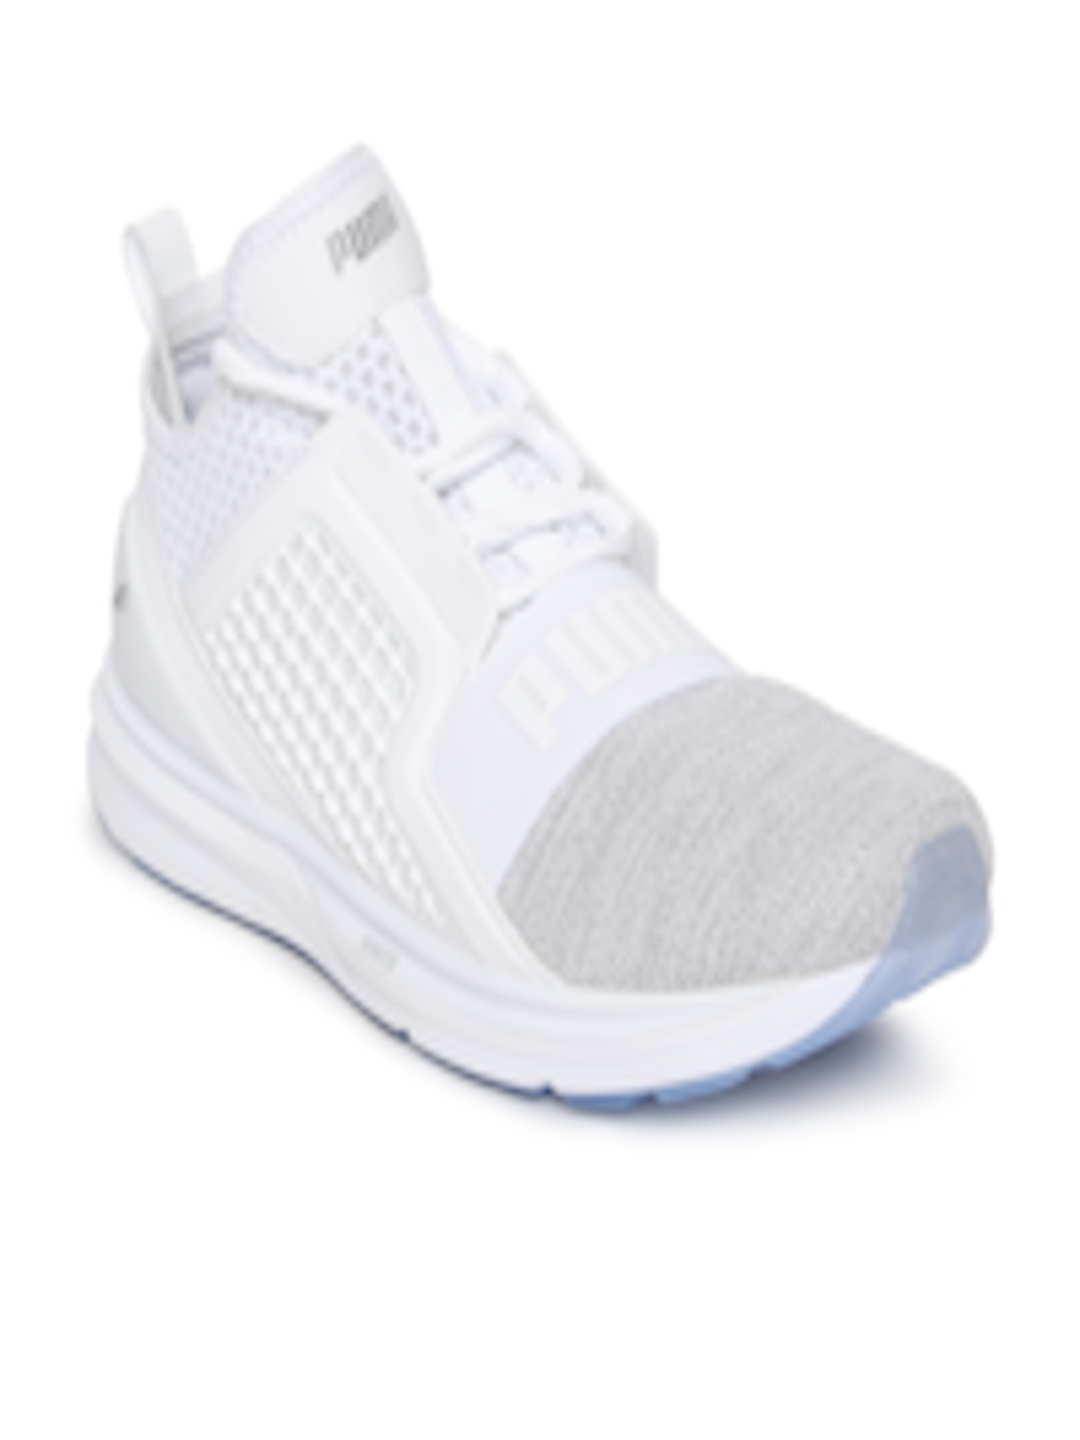 Buy Puma Men White IGNITE Limitless Knit Sneakers - Casual Shoes for ... ae9a0f942